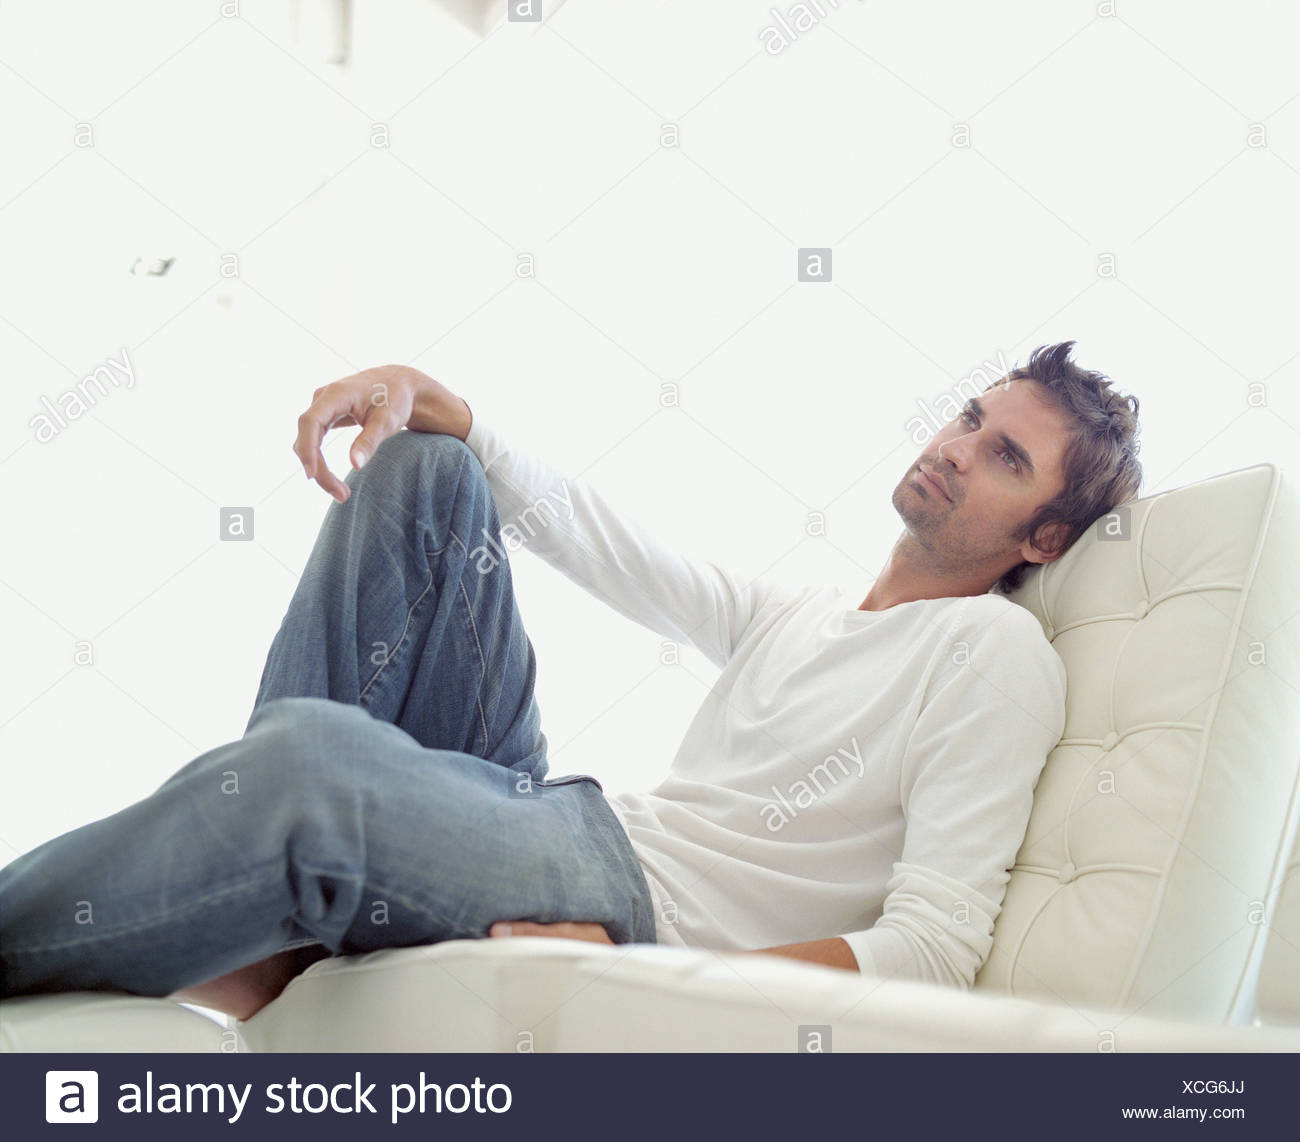 A man relaxing in a comfy seat Stock Photo